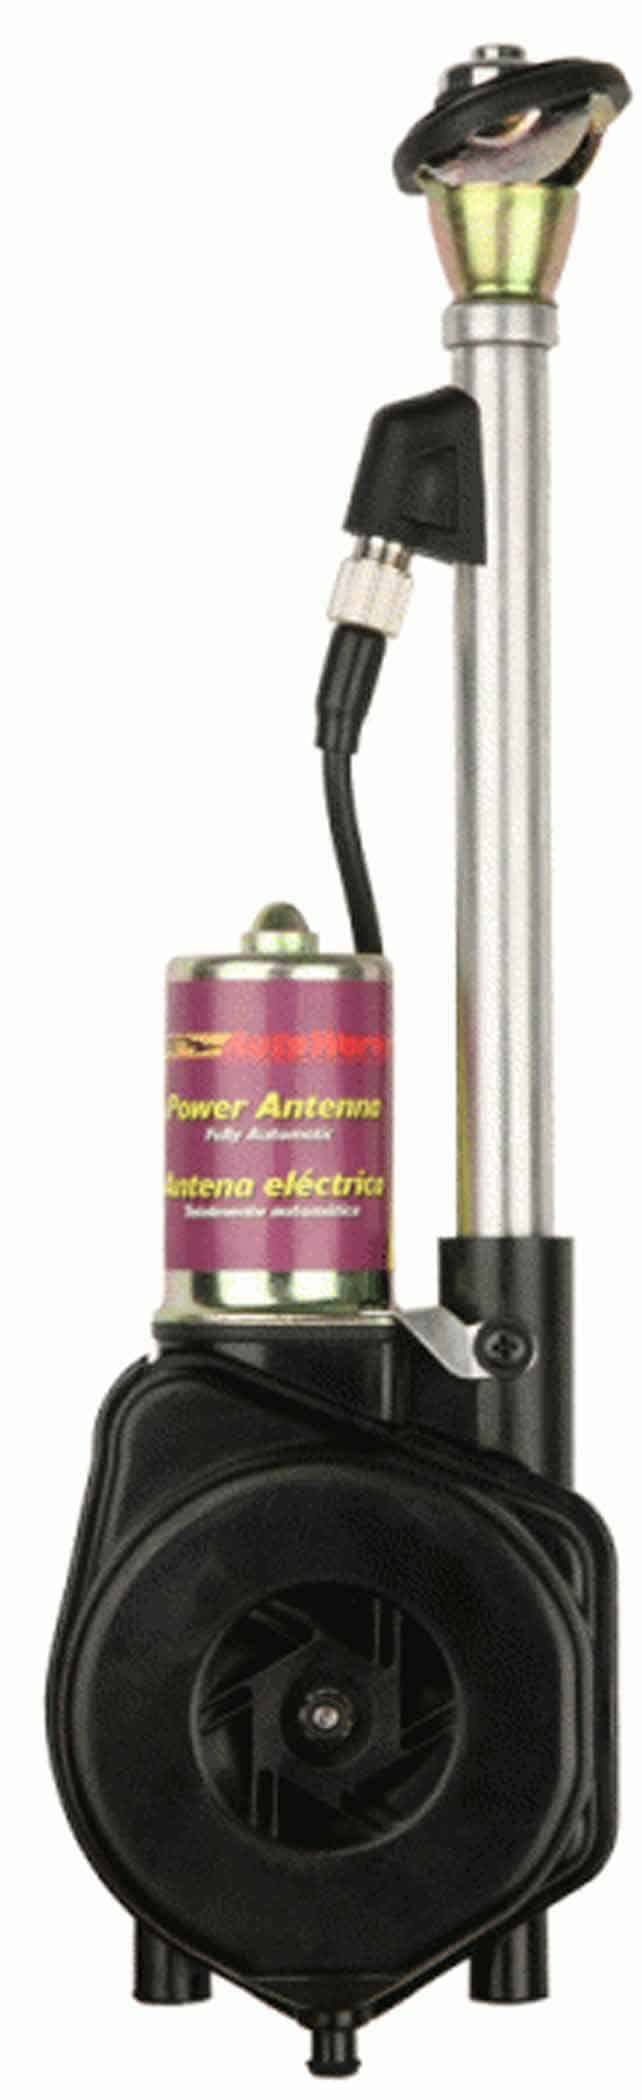 44PW22 - Metra 5 Section Automatic AM/FM Power Antenna